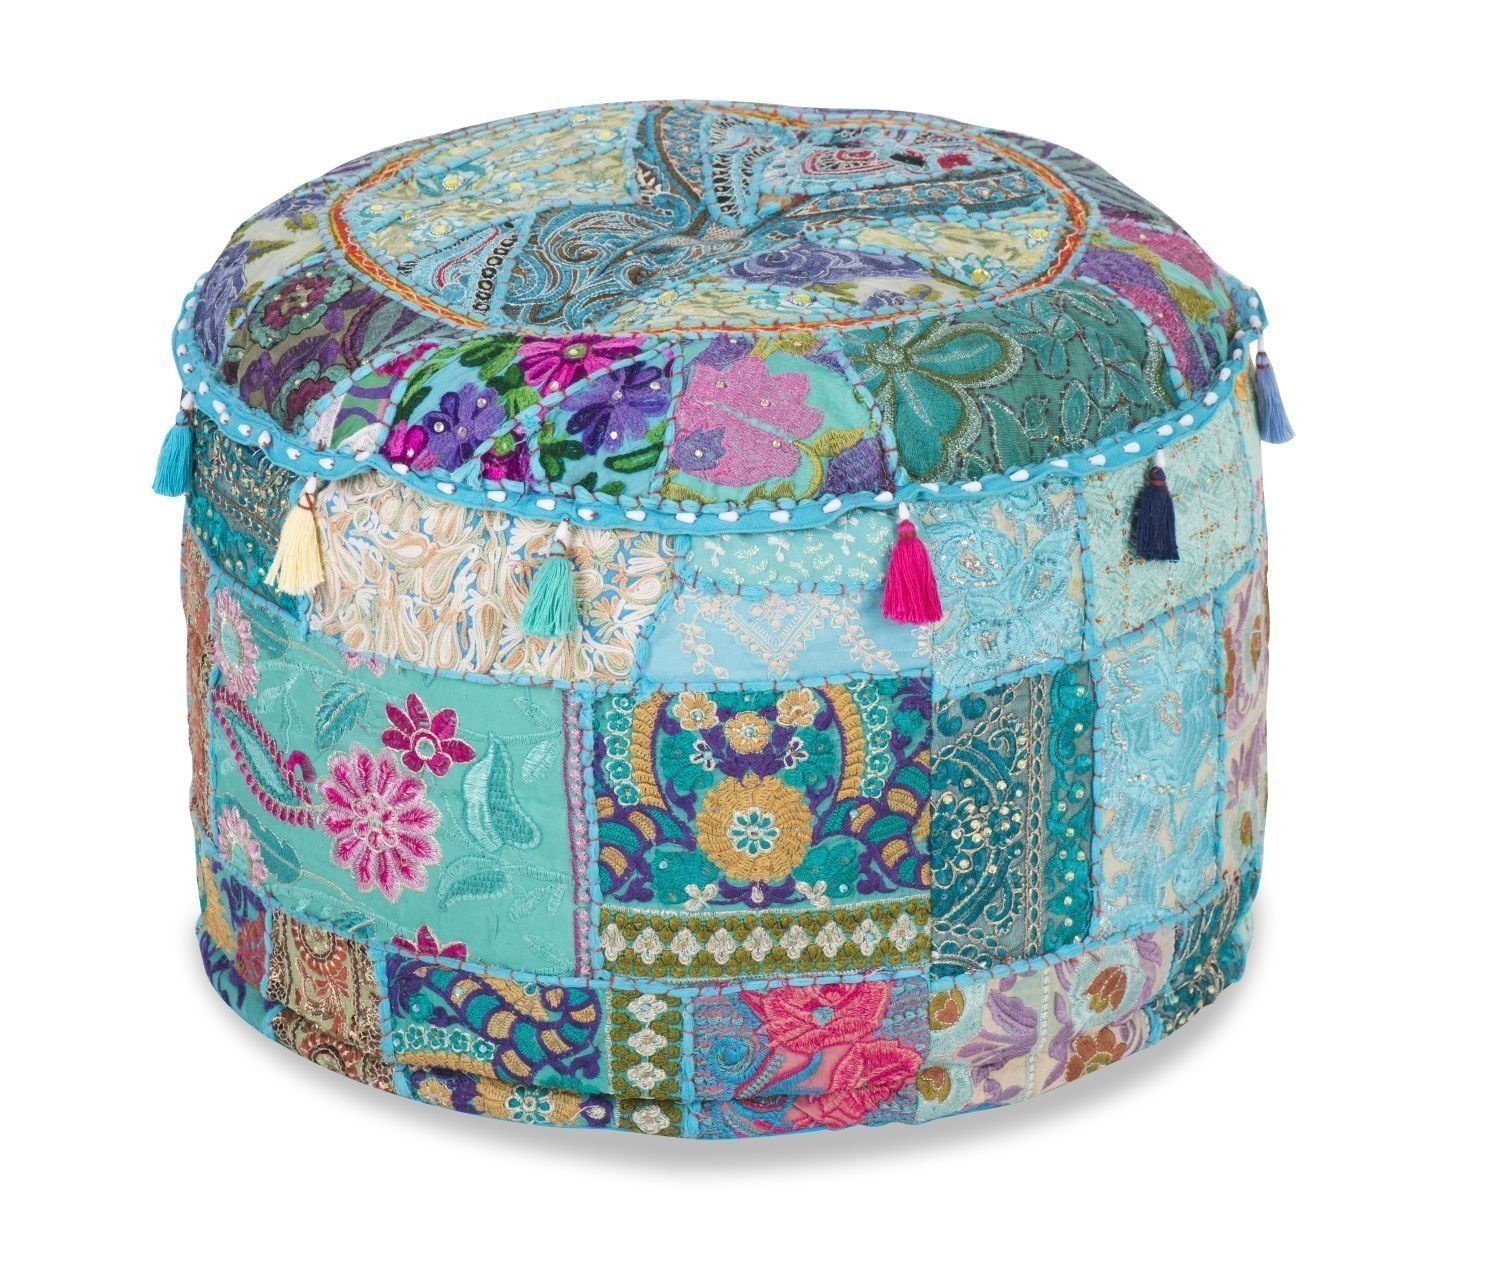 Footstool ottoman cover pouf round furniture pouffee floor cushion decor 16Wx12H